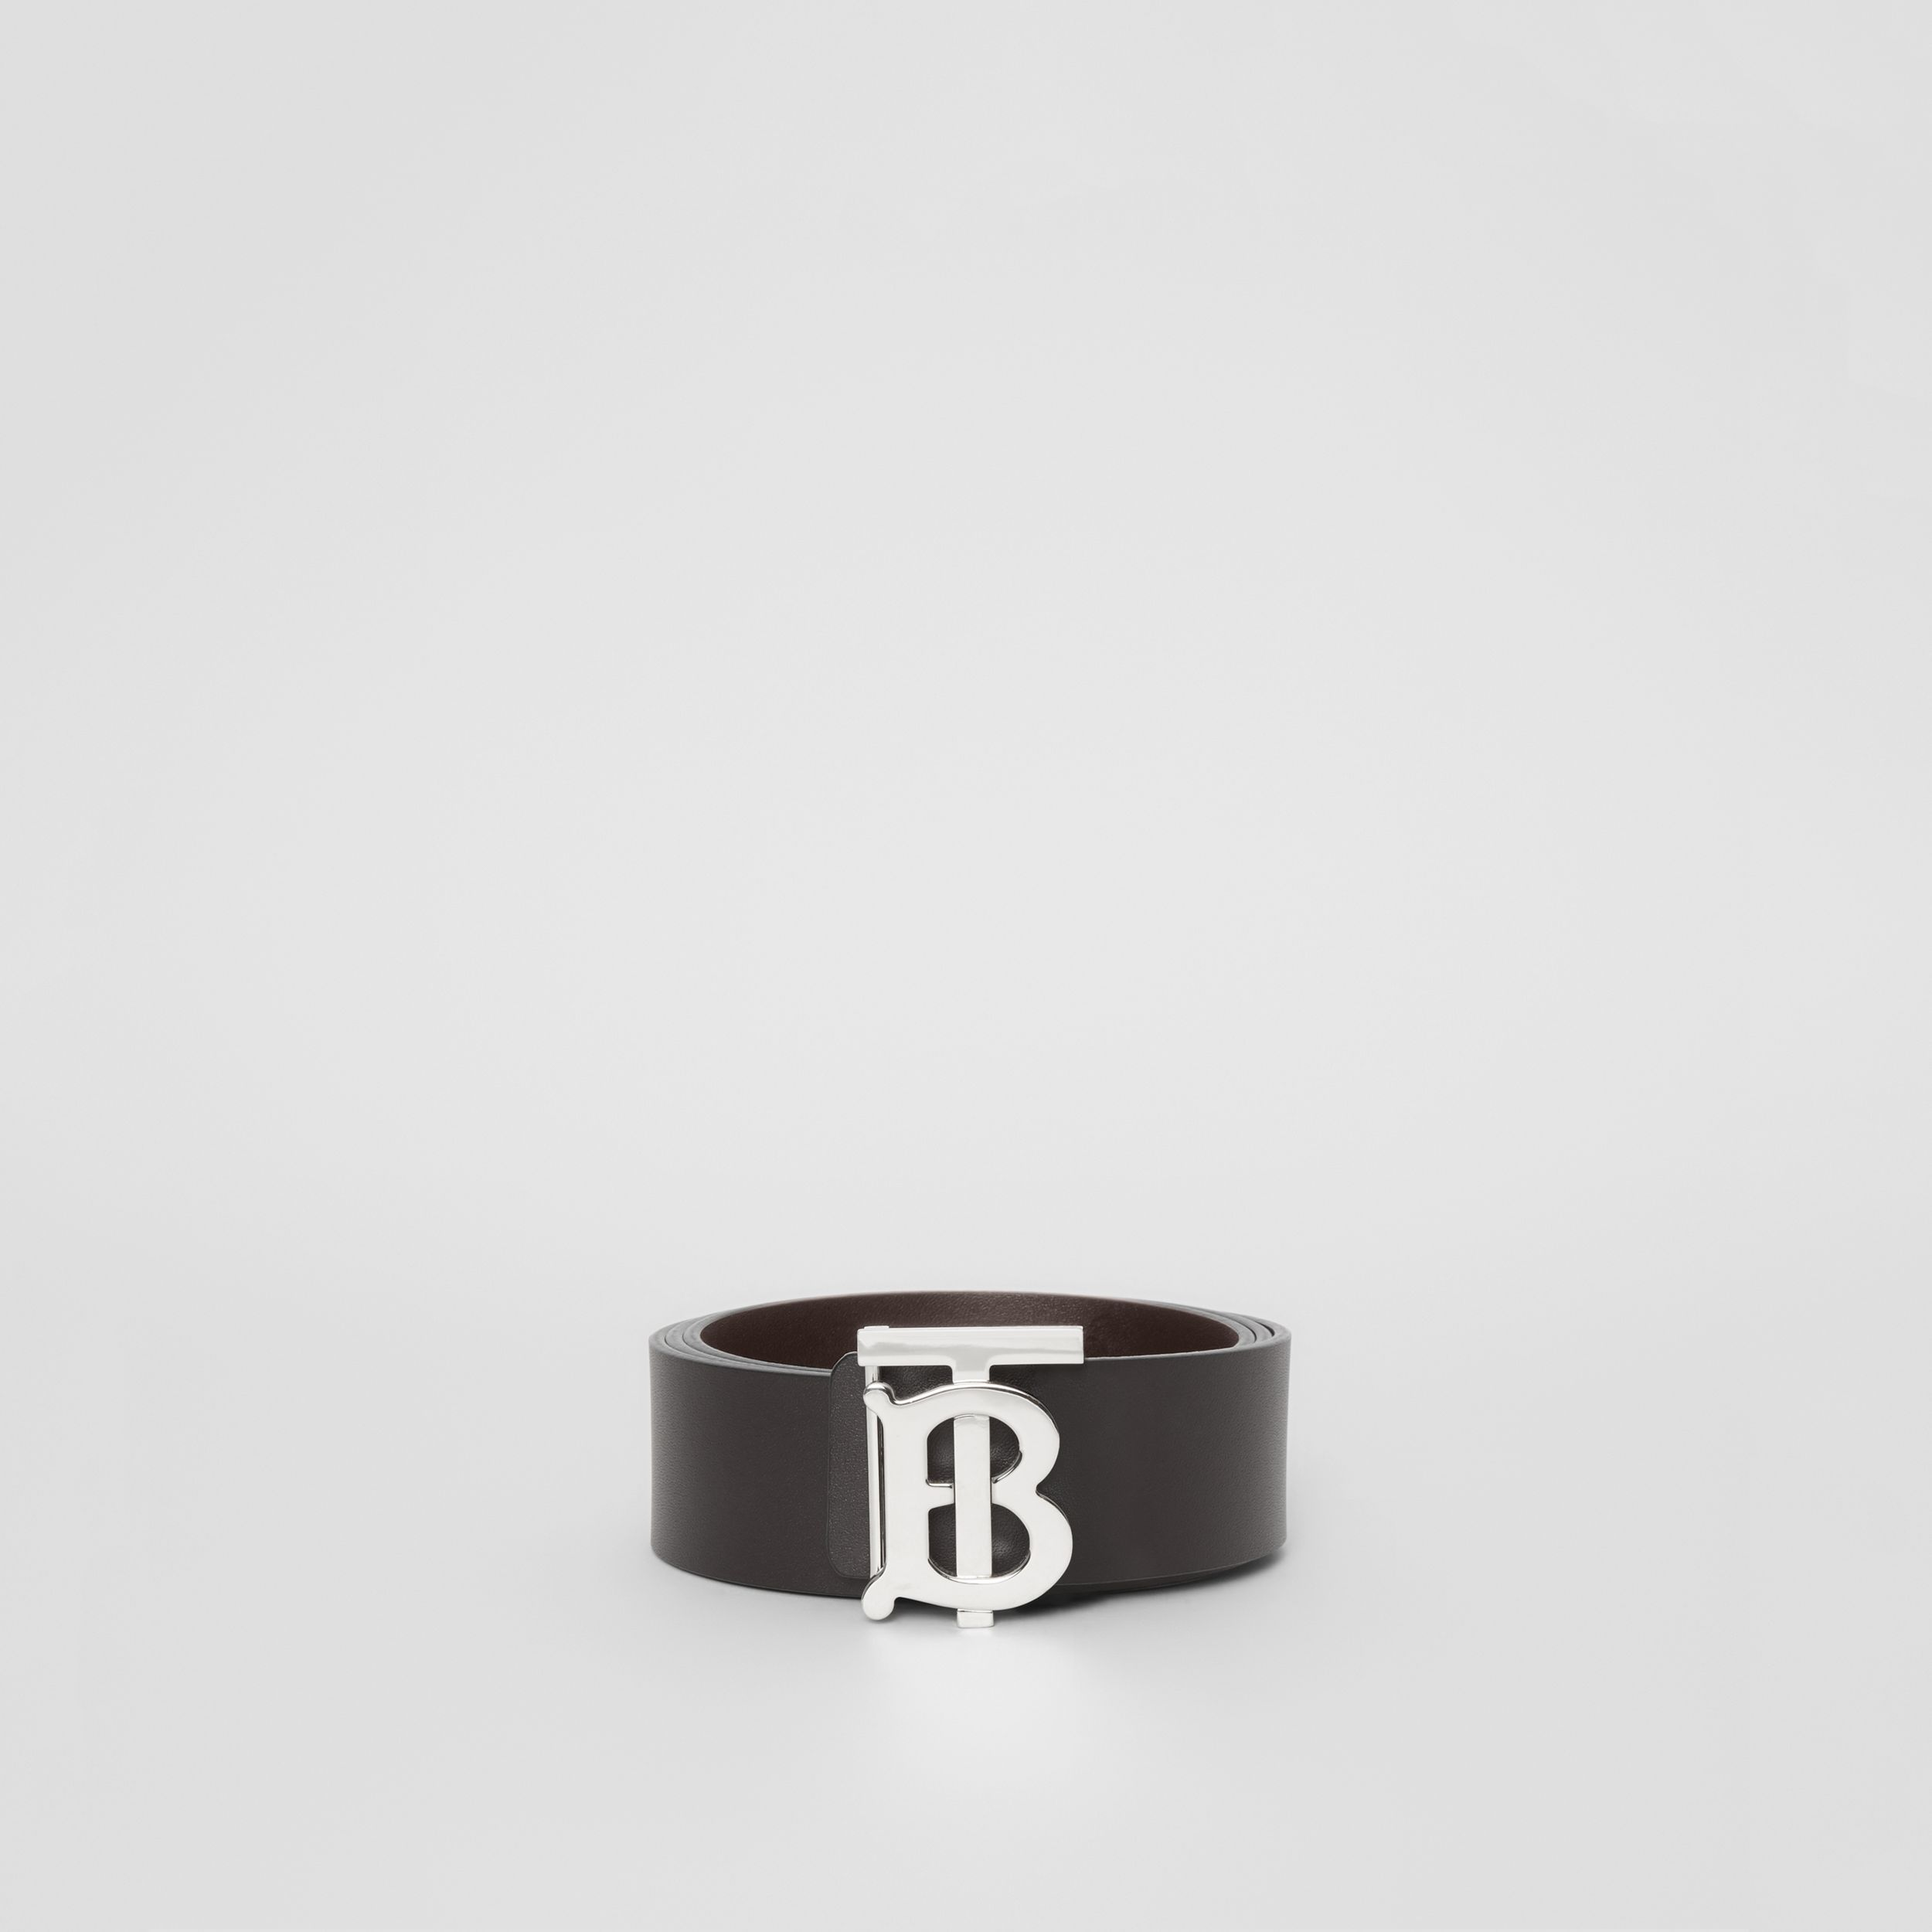 Reversible Monogram Motif Leather Belt in Black/malt Brown - Men | Burberry Australia - 4